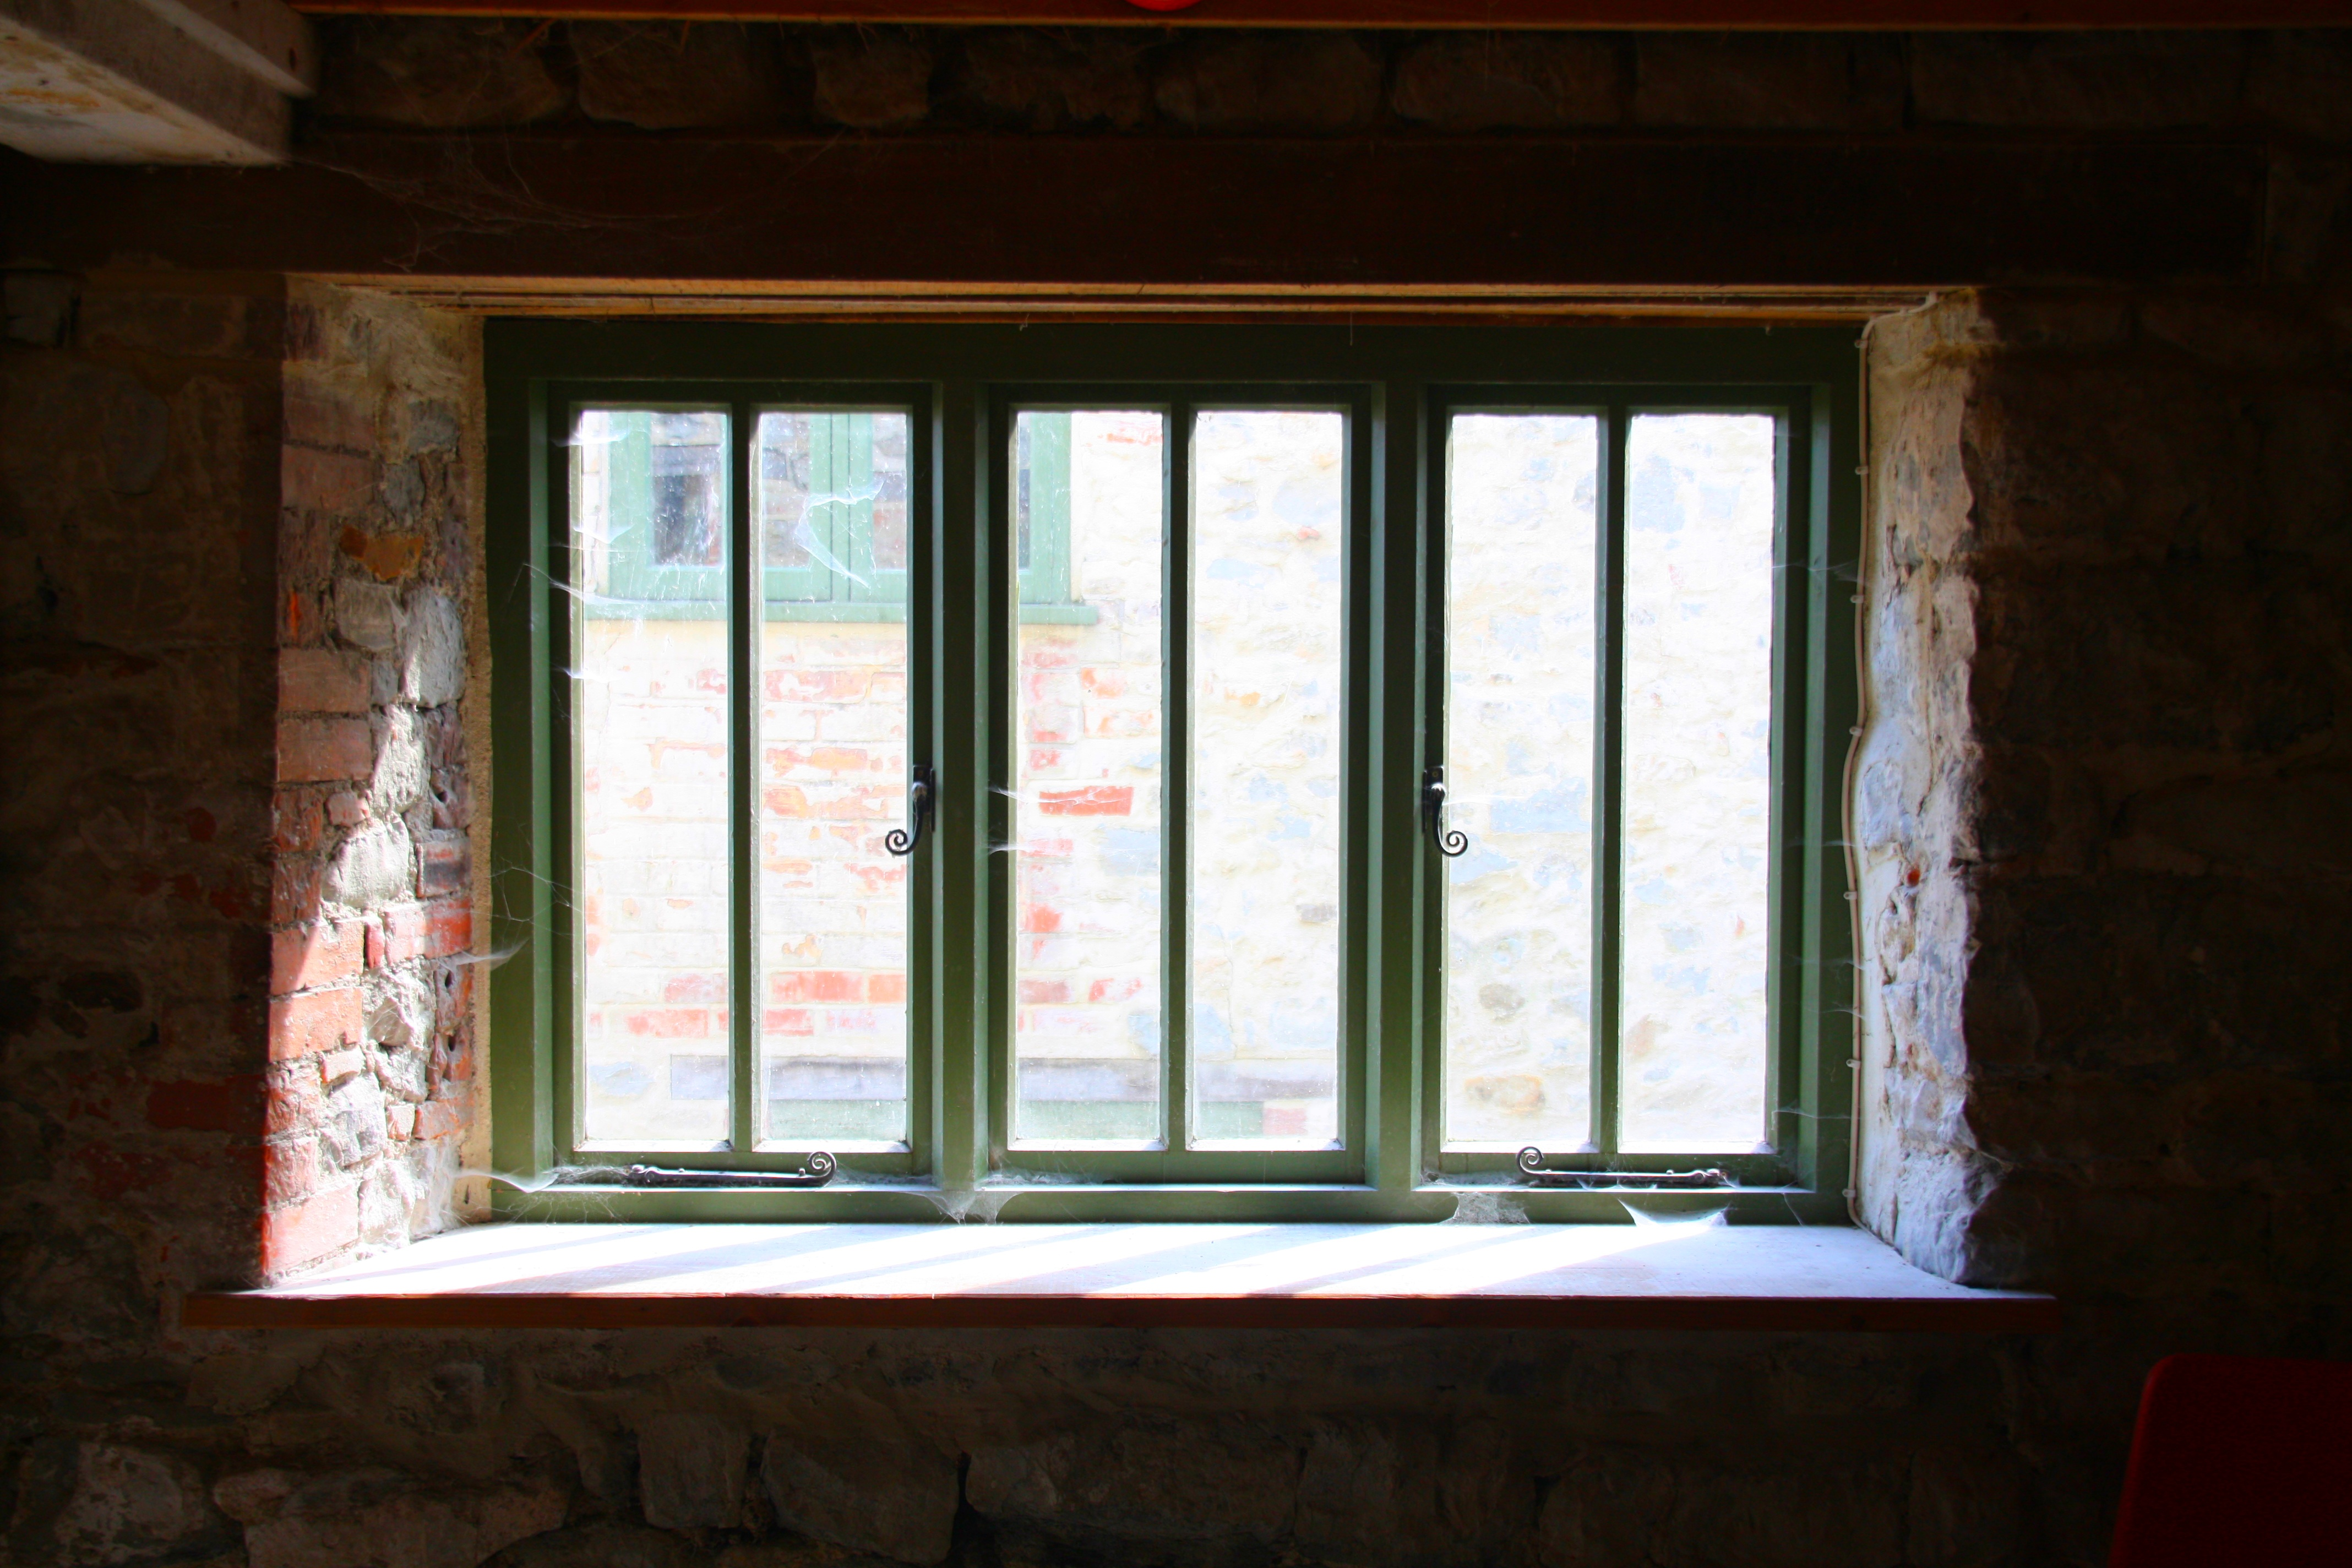 Illustration shows how windows with low e coatings reflect back part - Illustration Shows How Windows With Low E Coatings Reflect Back Part 27